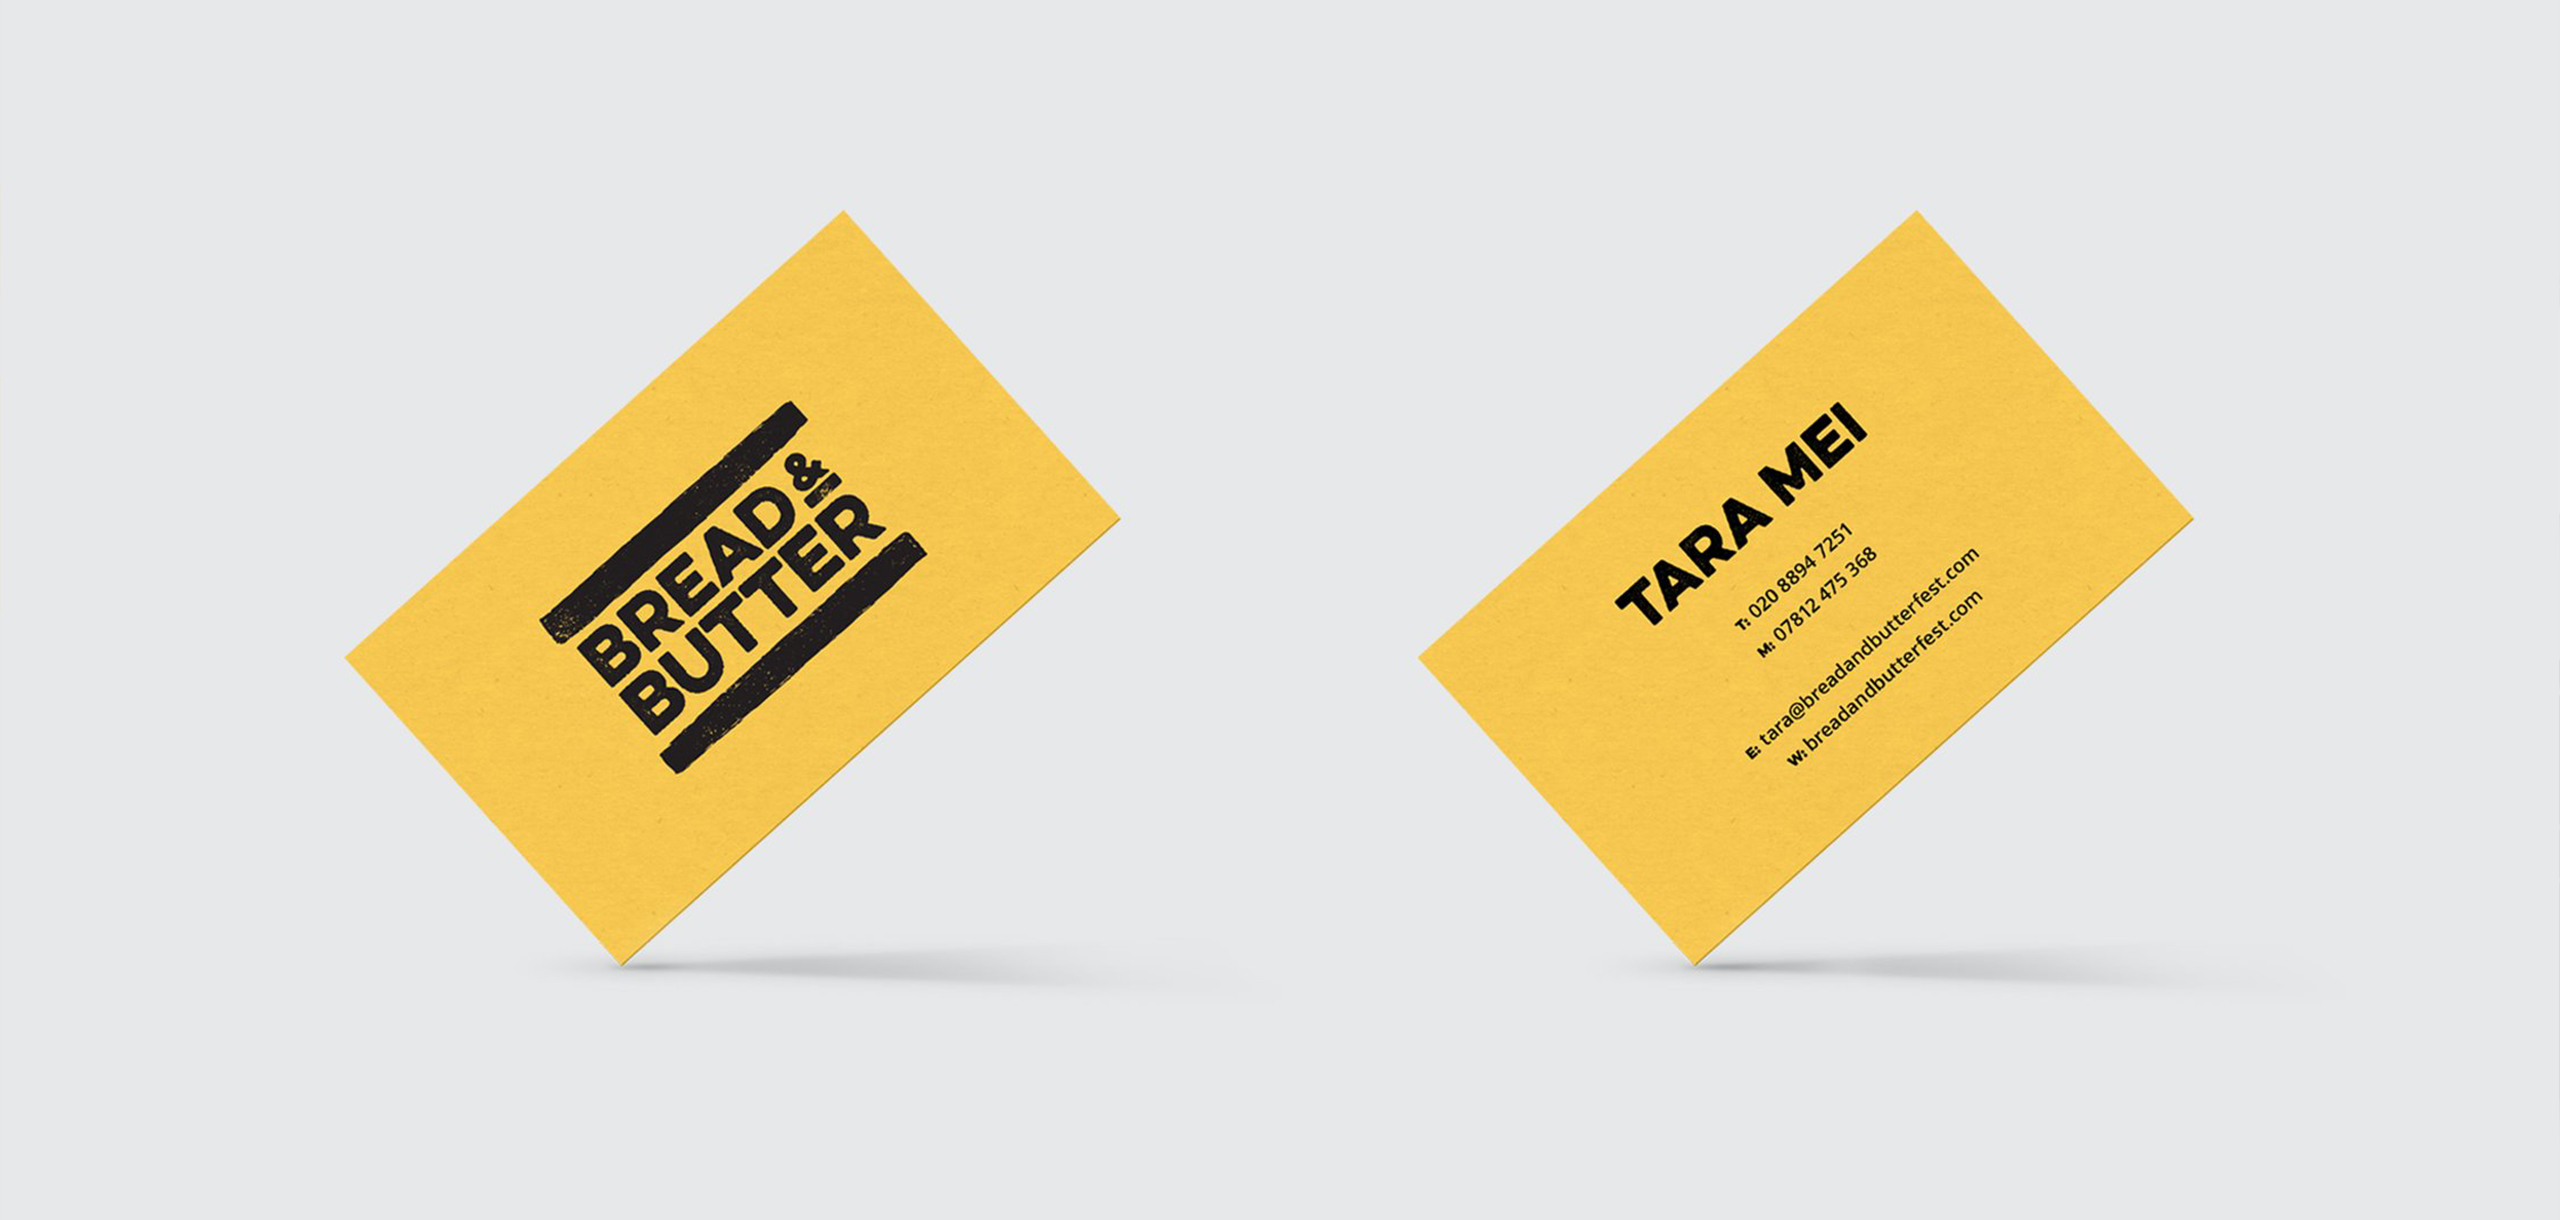 Business cards for food startup Bread and Butter, designed by White Bear Studio